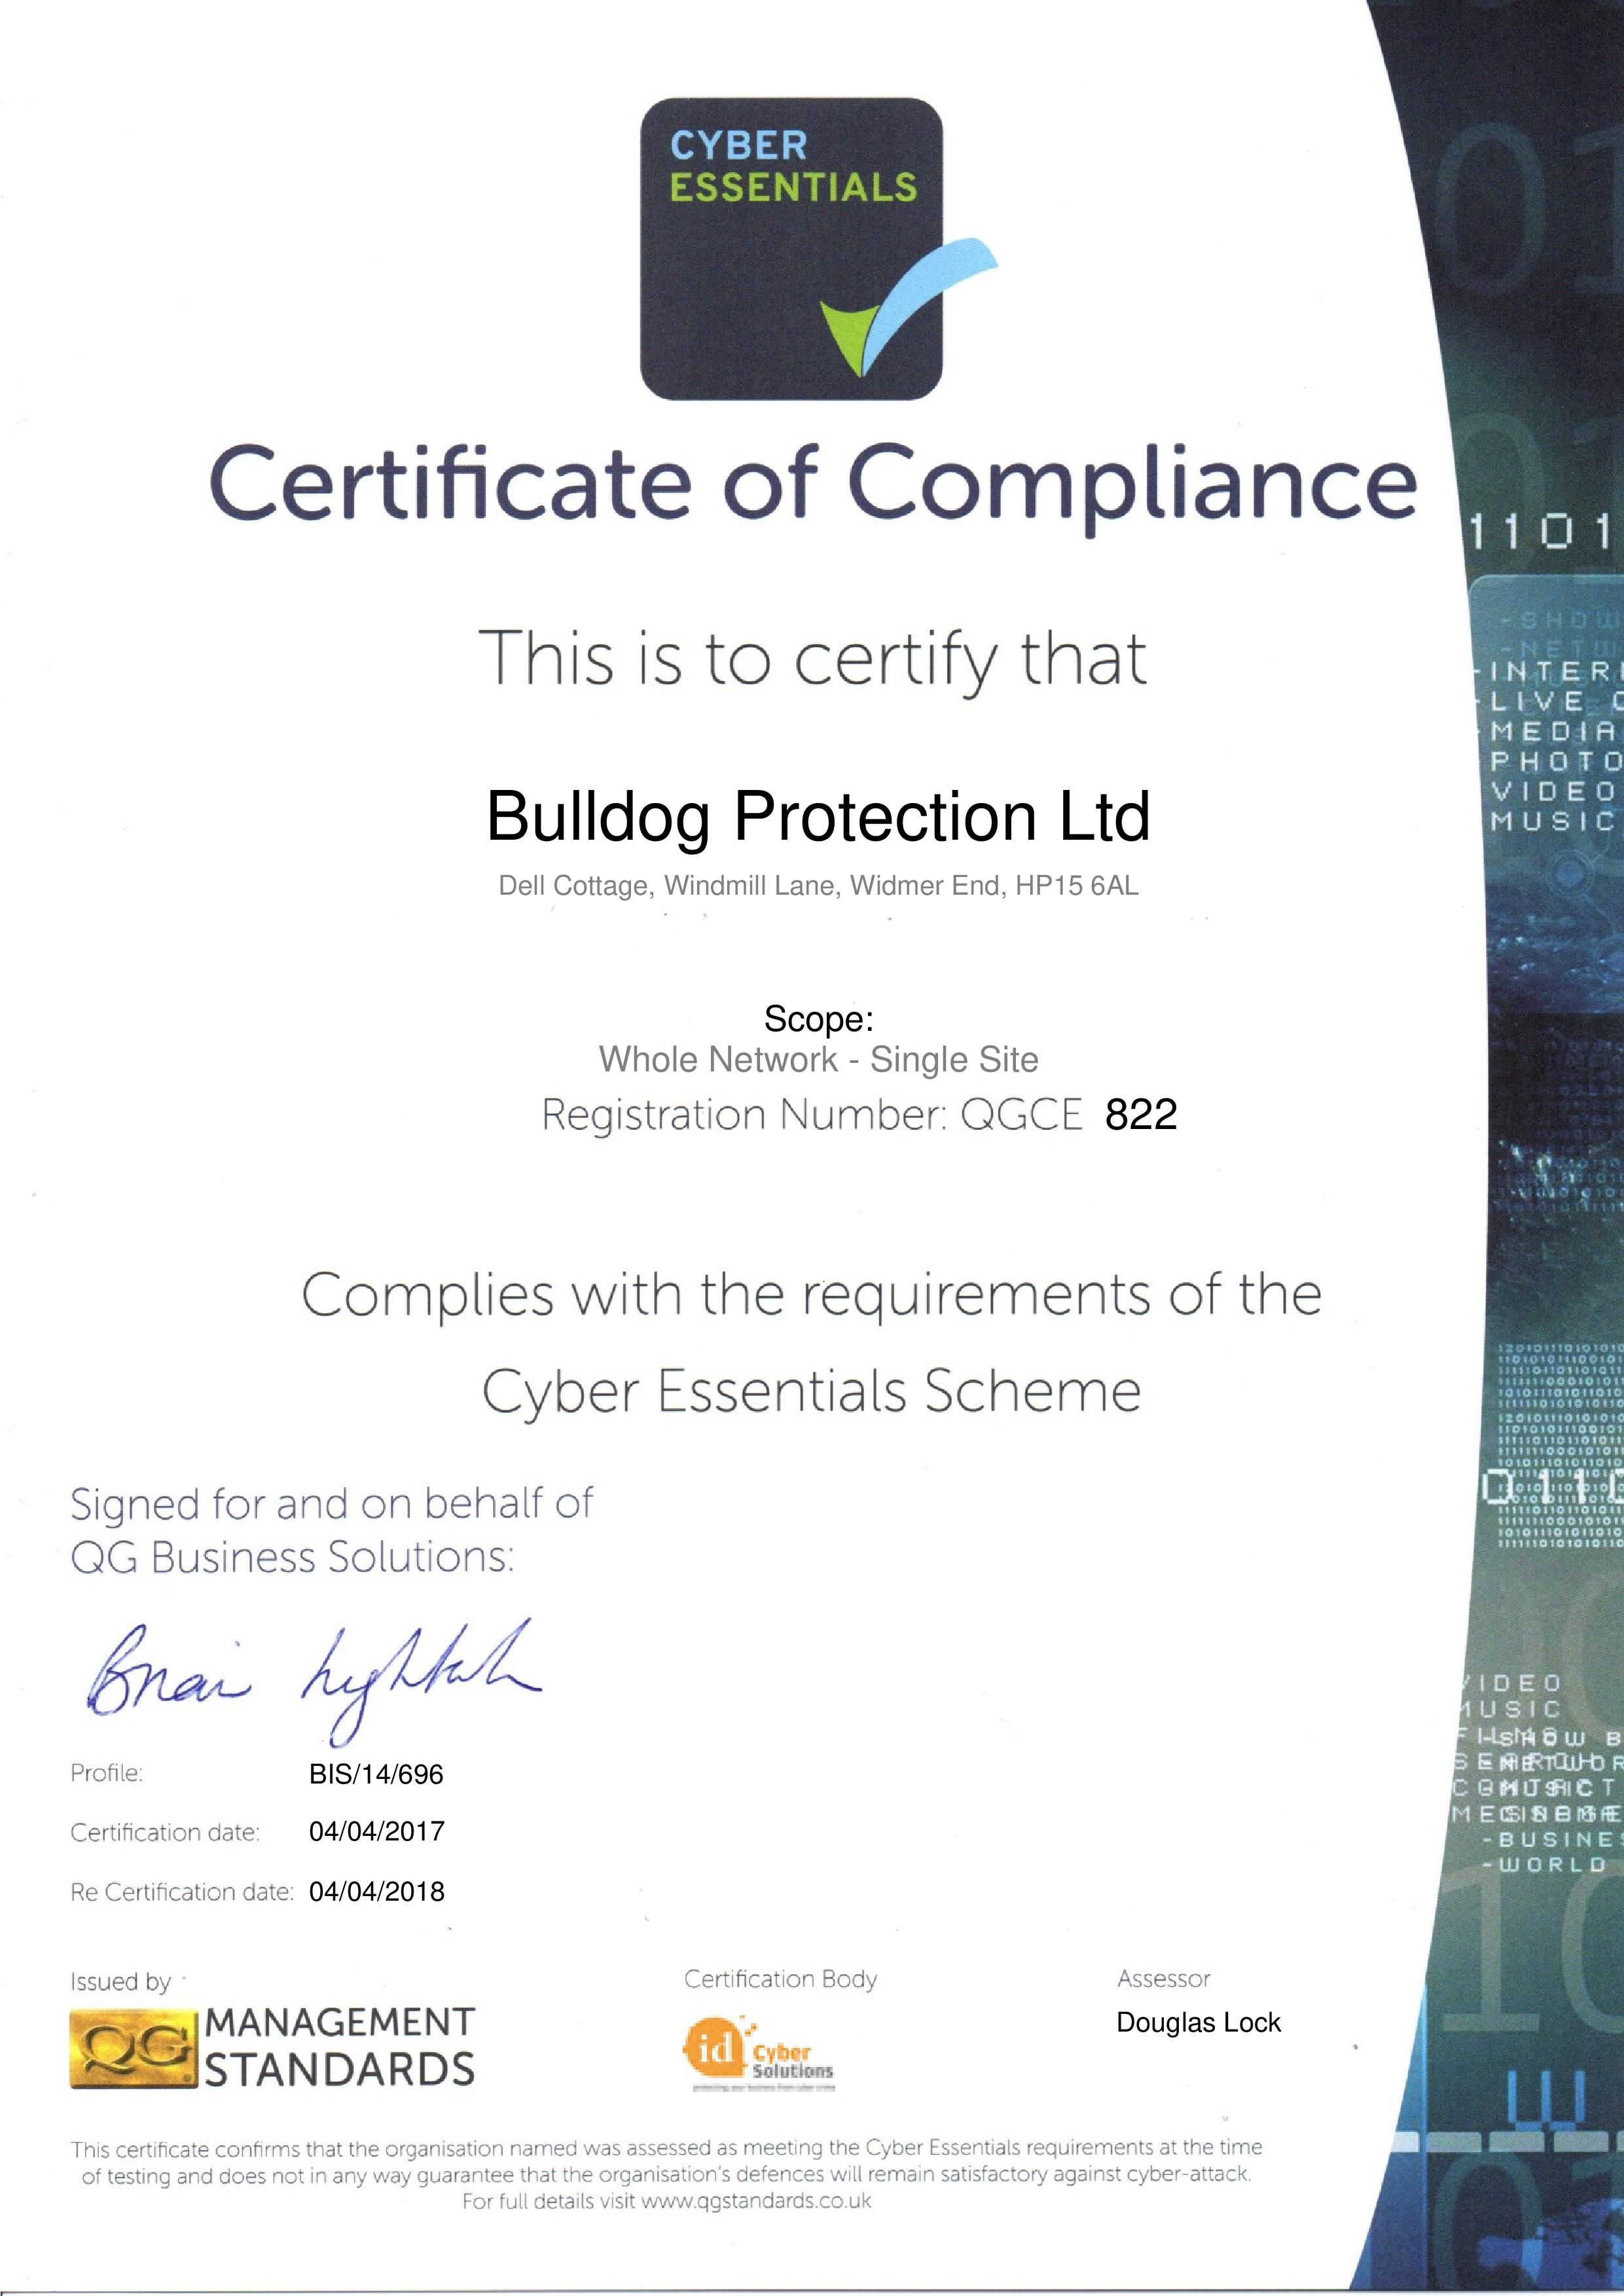 QGCE822 Bulldog Protection Ltd